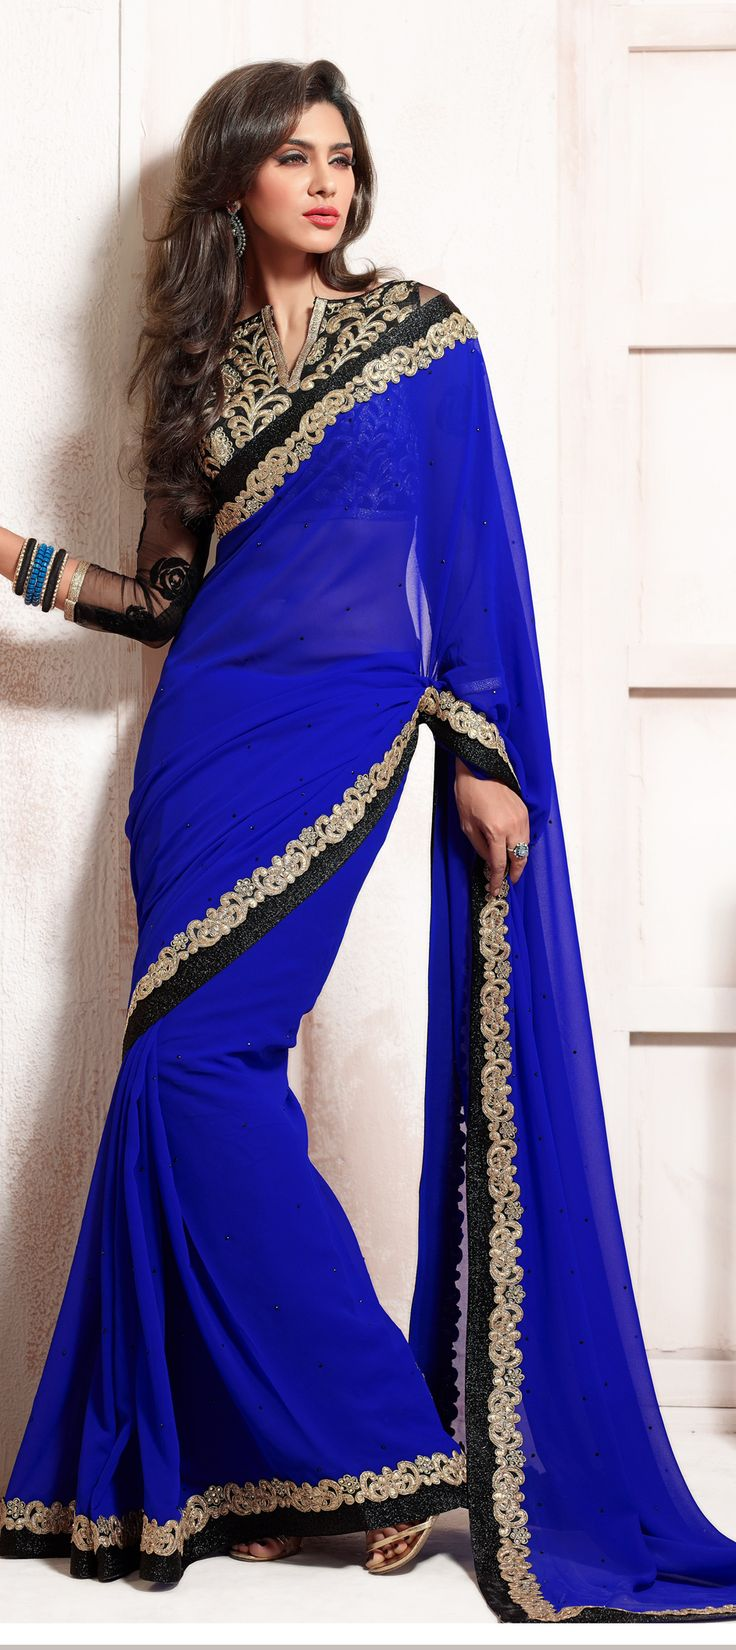 149826: INDIGO is the color that sprinkles ROYALTY. Have a look at this #saree.  #Partywear #Blue #weddingwear #bridalgifts #onlineshopping #embroidery #lace #sale #neonblue